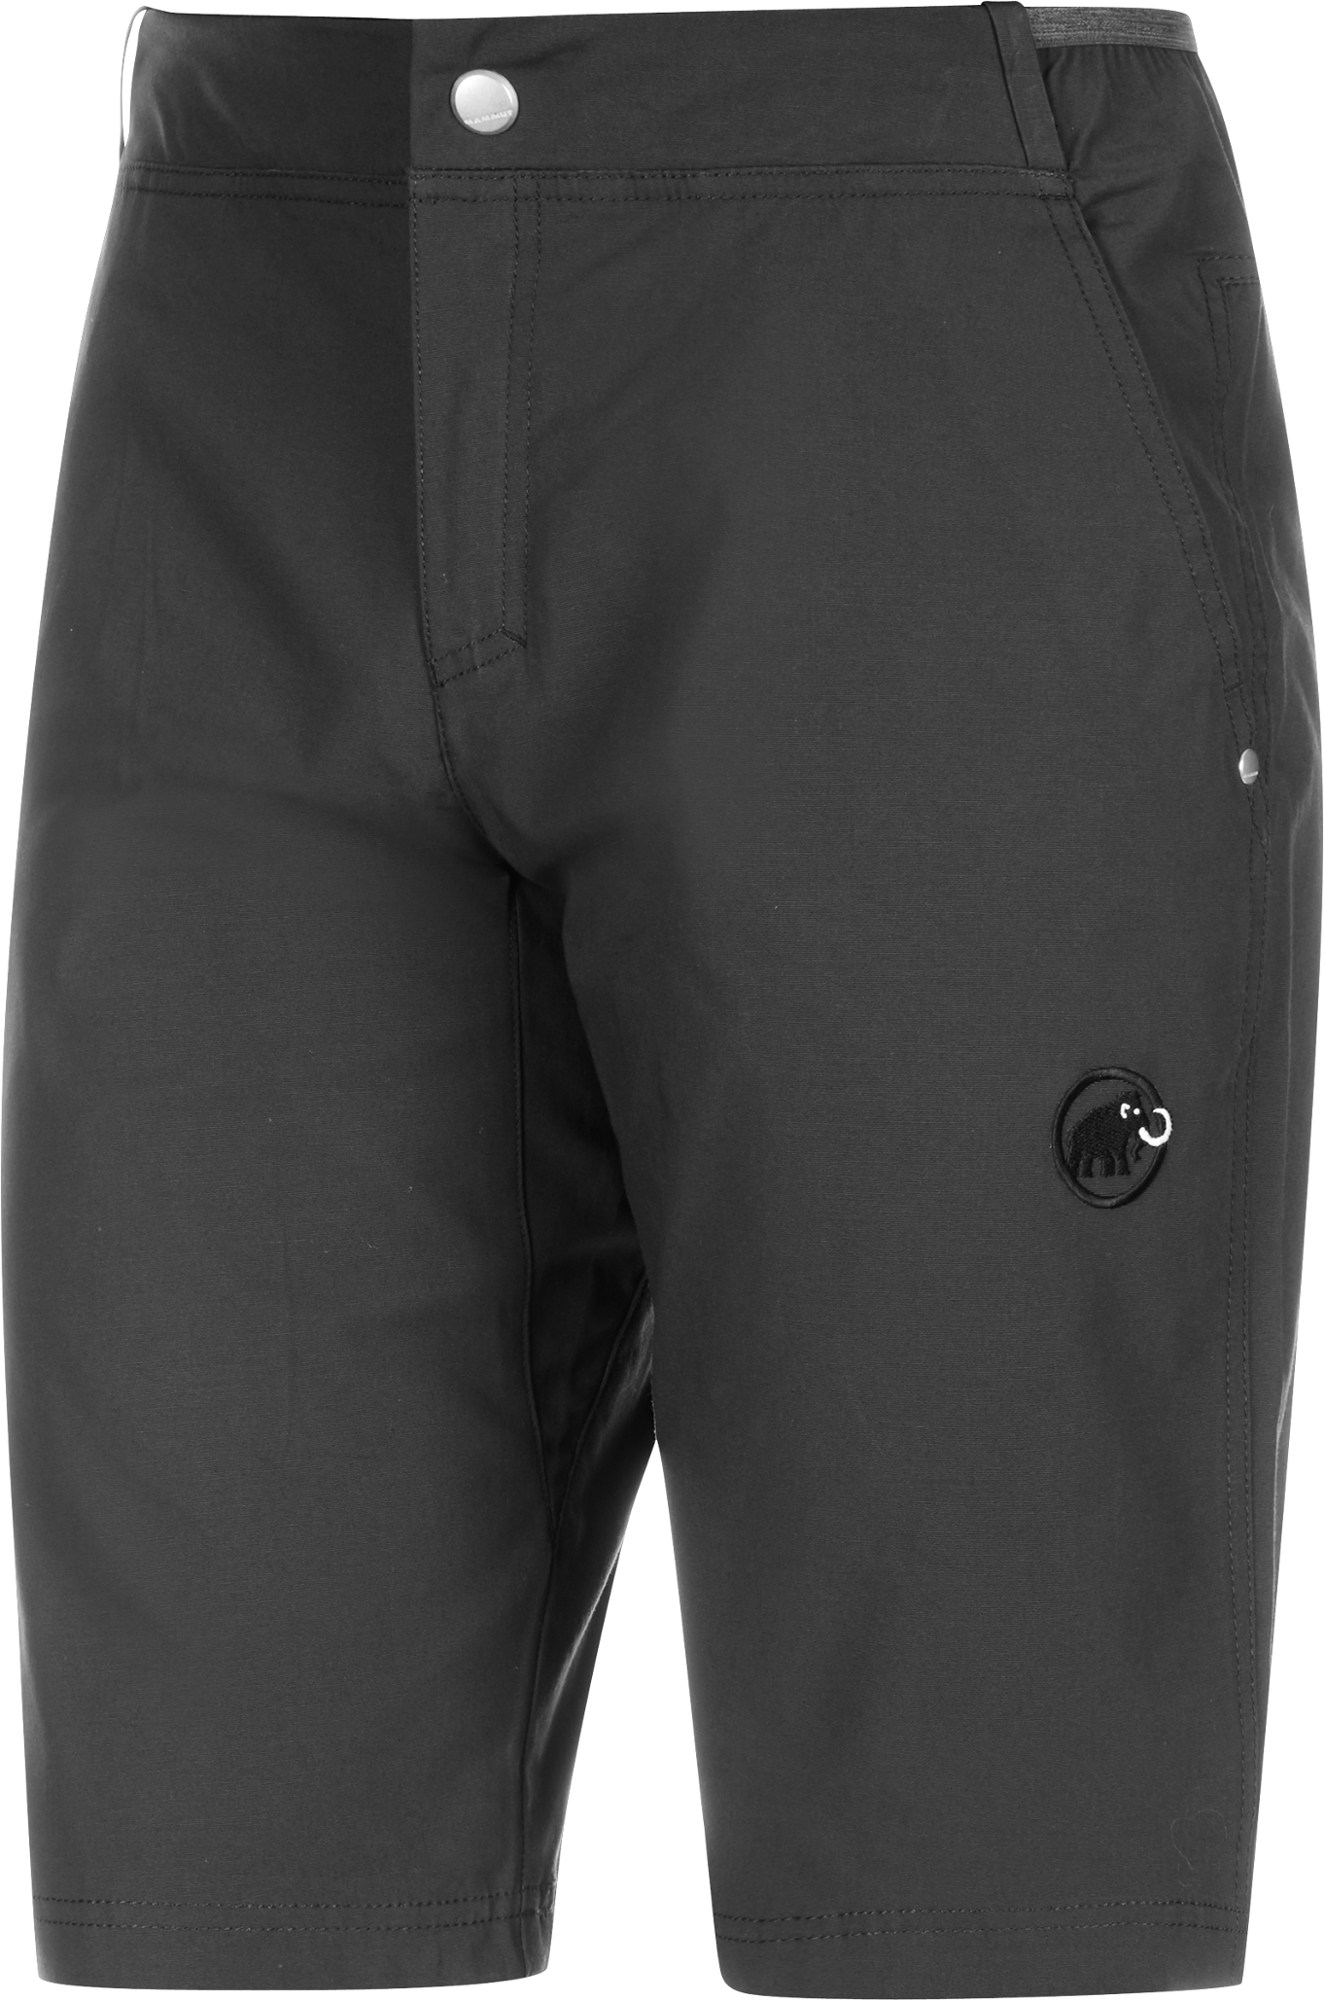 Mammut Alnasca Shorts - Men's